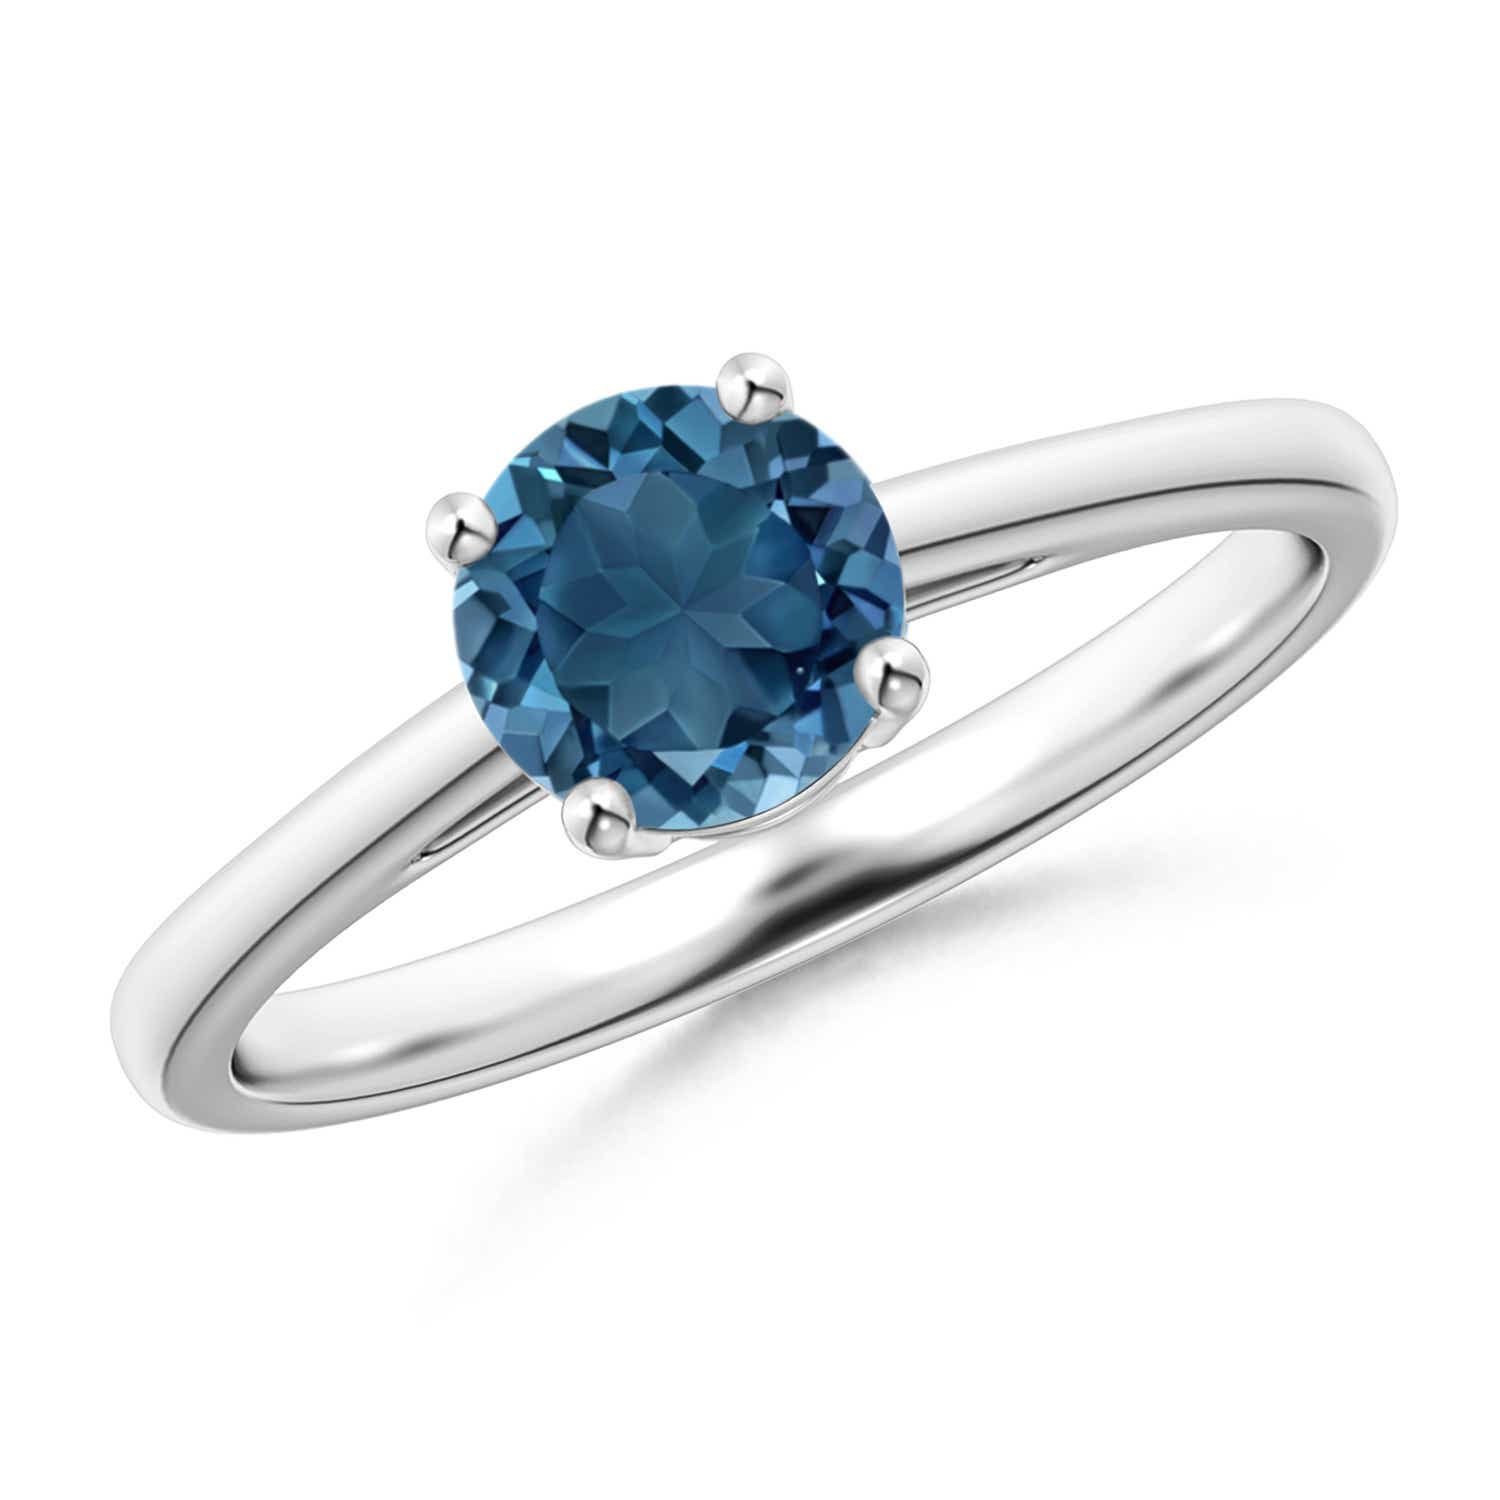 Angara Natural London Blue Topaz Ring in White Gold zvzdCUV63x